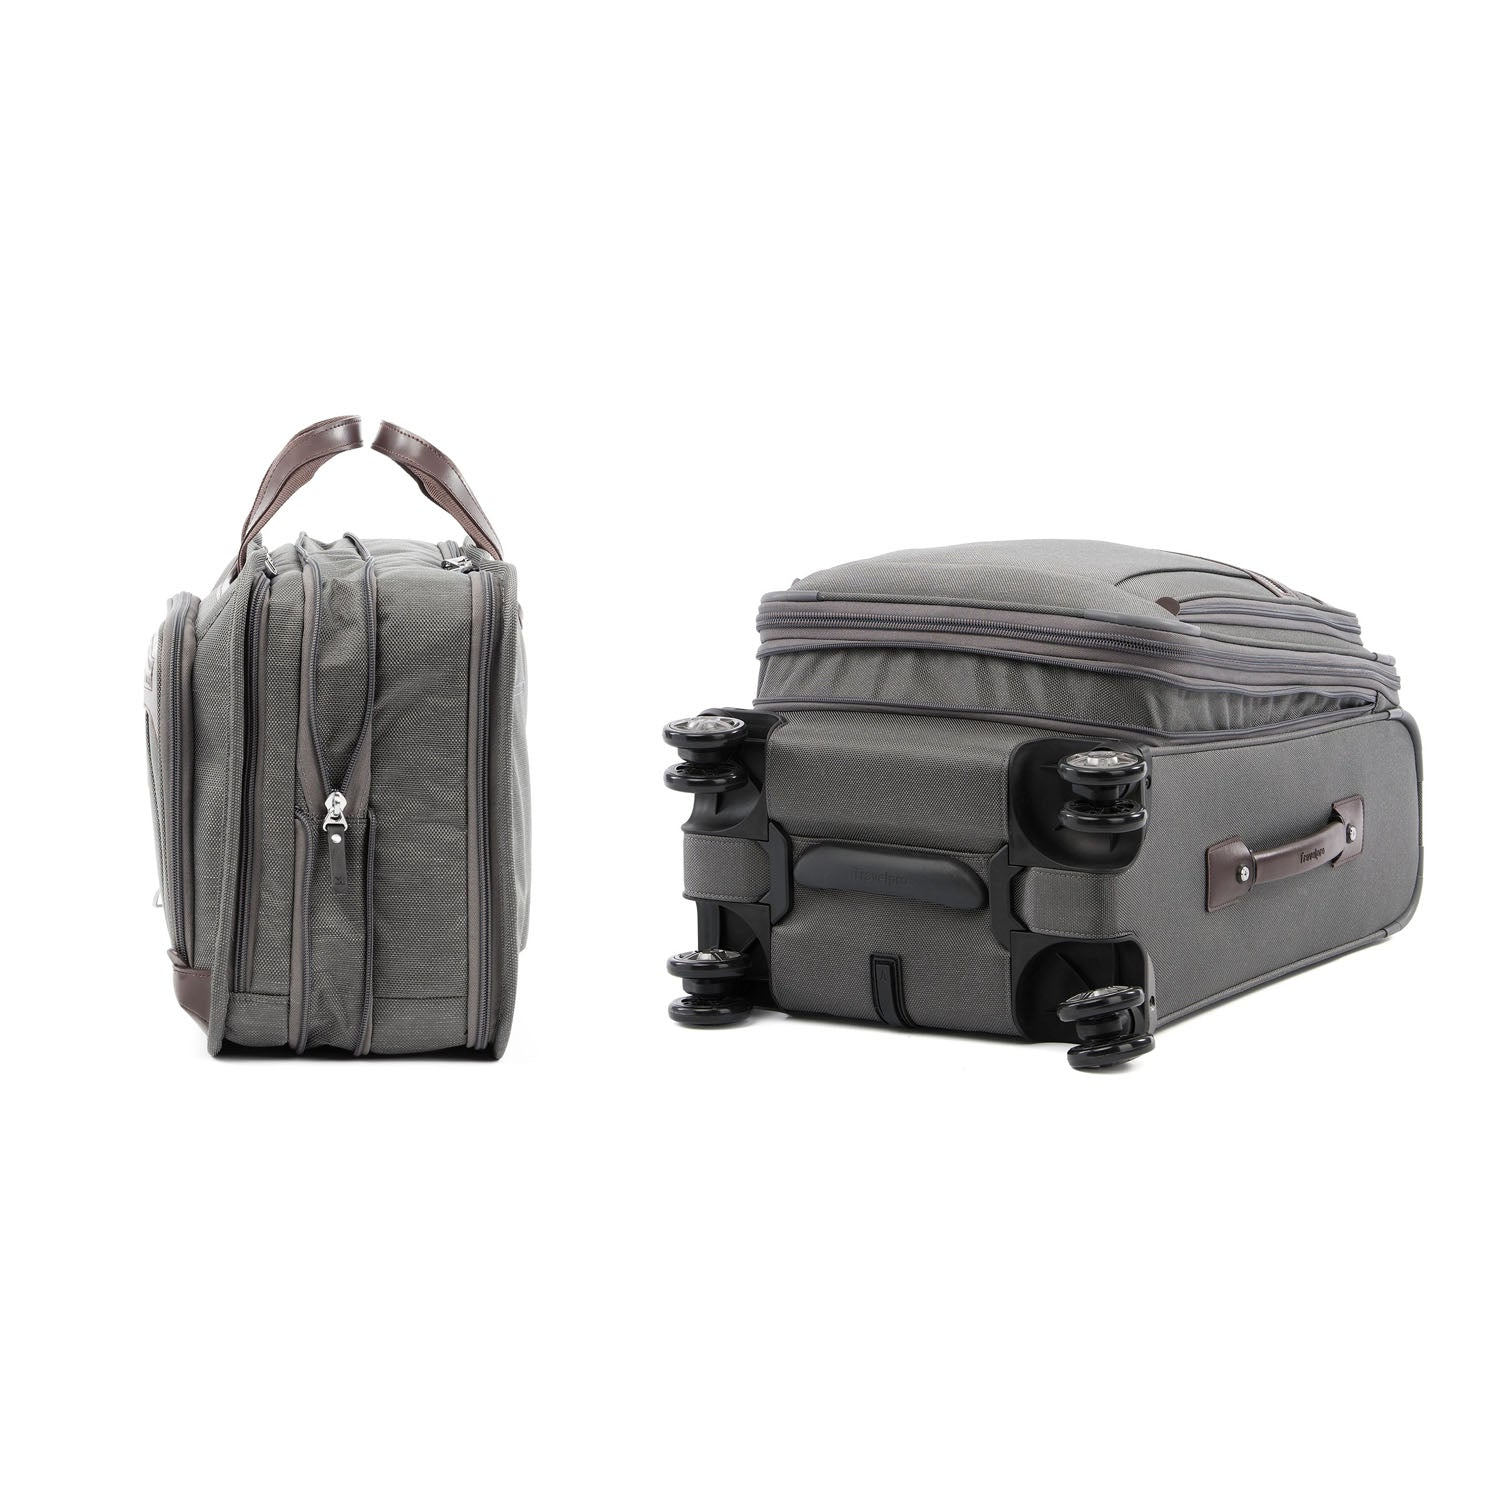 Platinum® Elite Trend Setter - Luggage Set